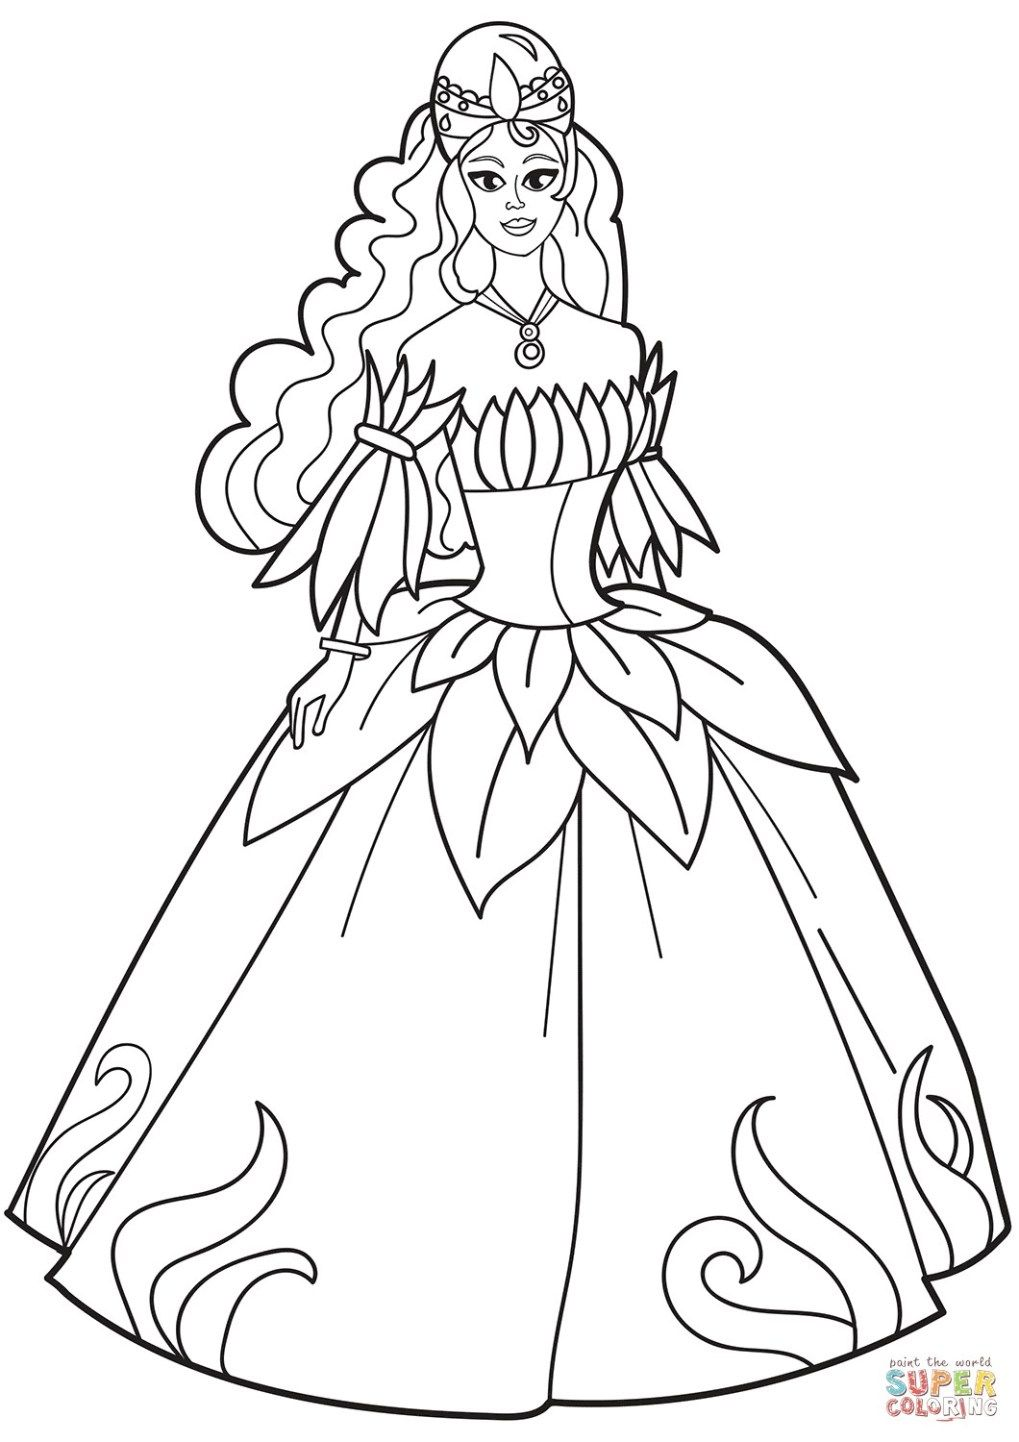 25 Creative Picture Of Dress Coloring Pages Entitlementtrap Com Princess Coloring Pages Coloring Pages For Girls Princess Coloring